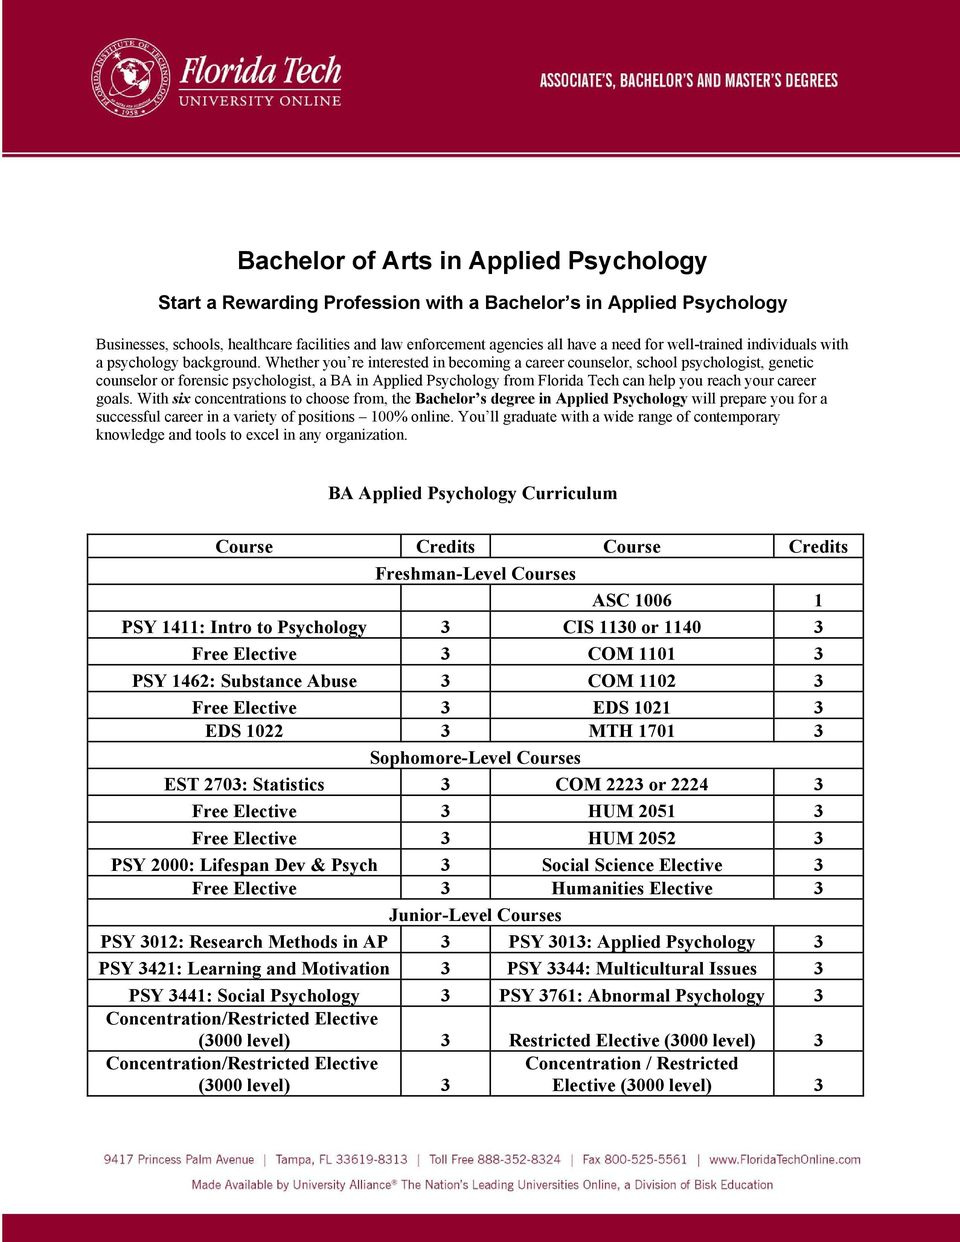 Whether you re interested in becoming a career counselor, school psychologist, genetic counselor or forensic psychologist, a BA in Applied Psychology from Florida Tech can help you reach your career